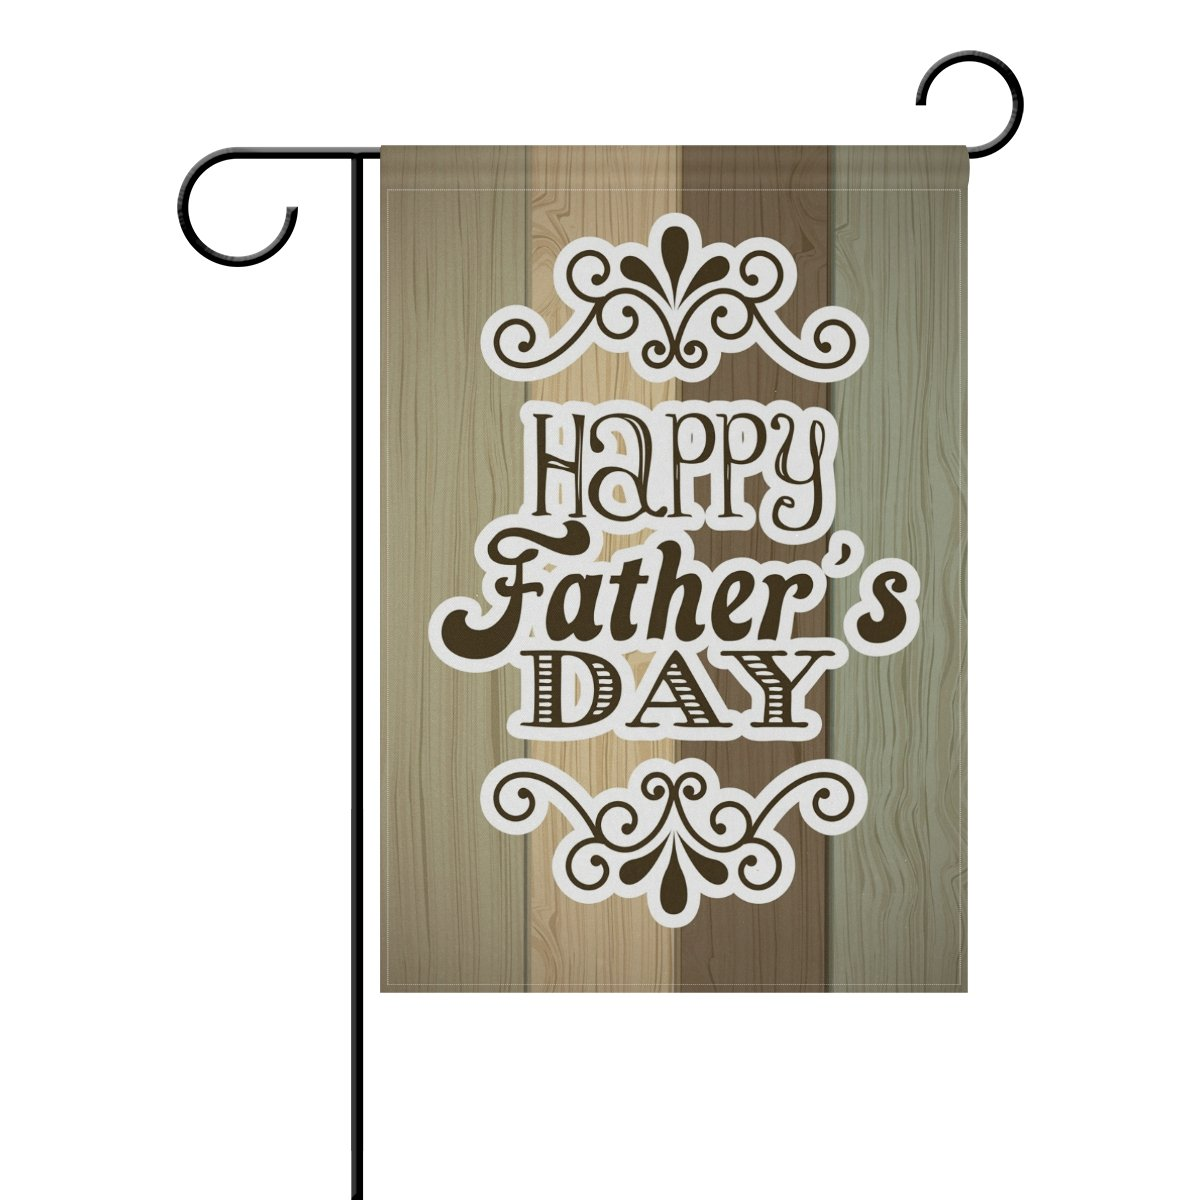 ALAZA Cooper Girl Vintage Wooden Background Happy Father's Day Garden Flag Yard Banner Polyester for Home Flower Pot Outdoor Decor 12X18 Inch